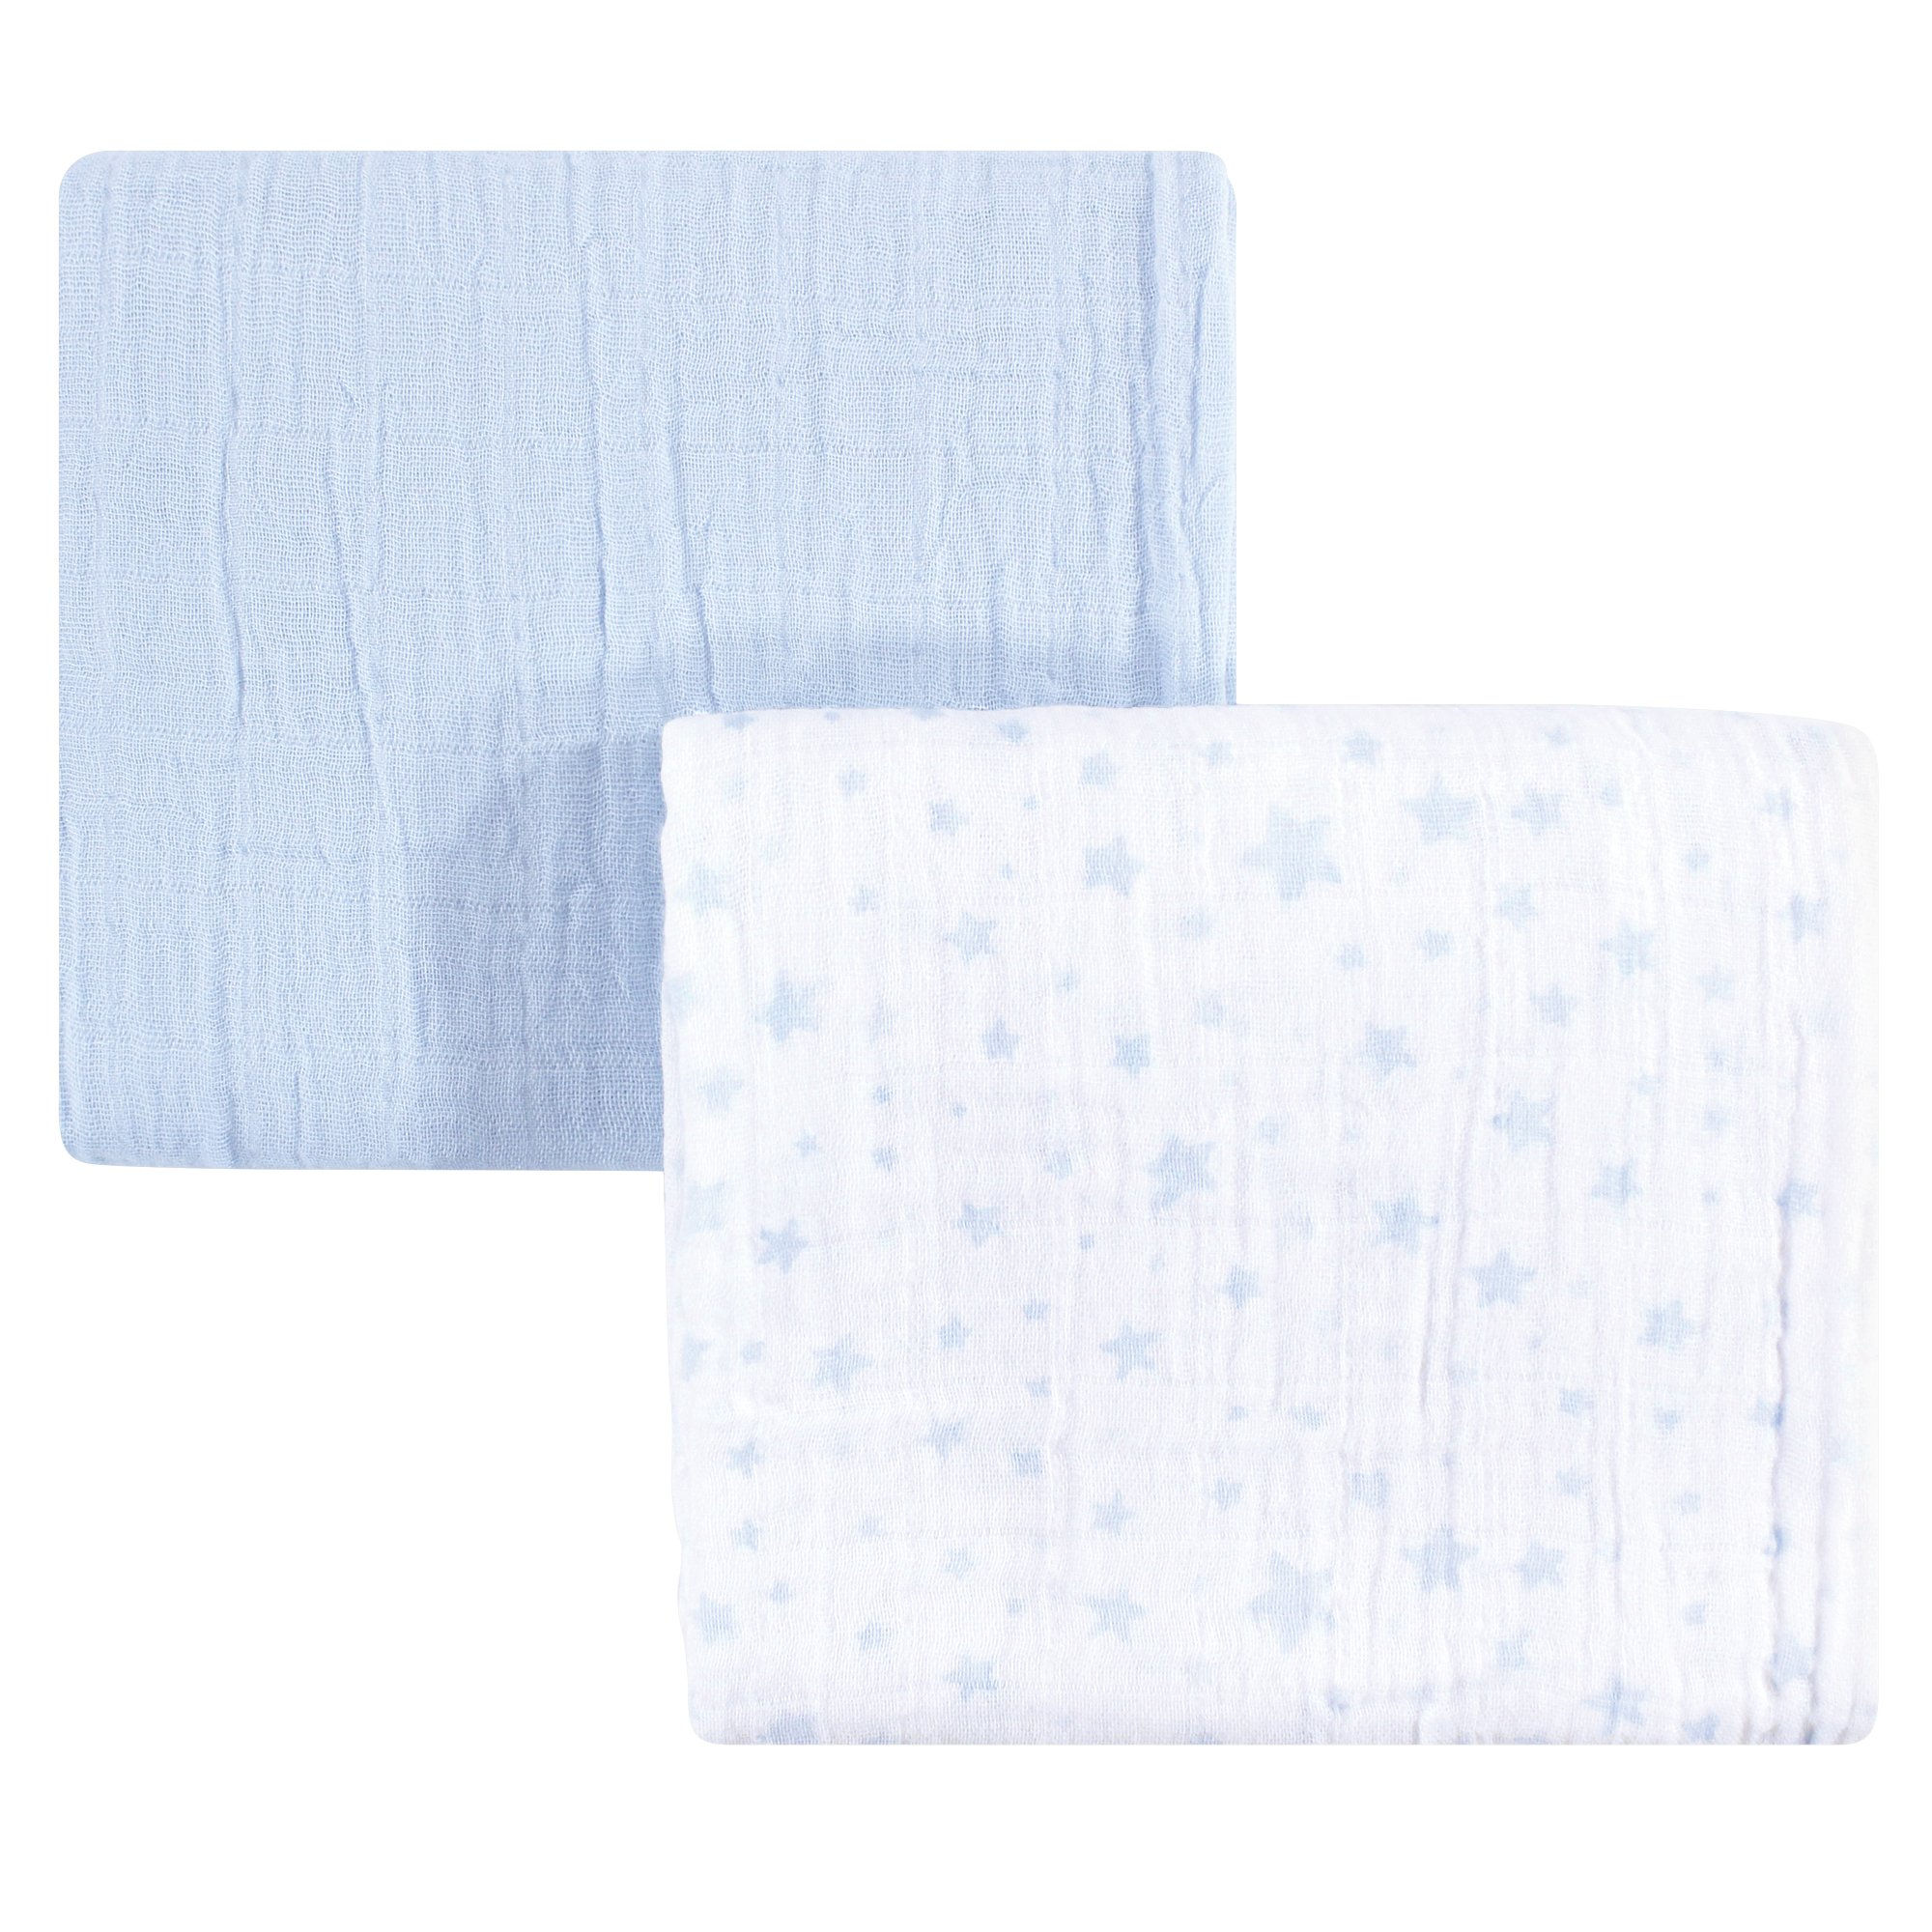 Hudson Baby Unisex Baby Cotton Muslin Swaddle Blankets, Blue Stars 2-Pack, One Size